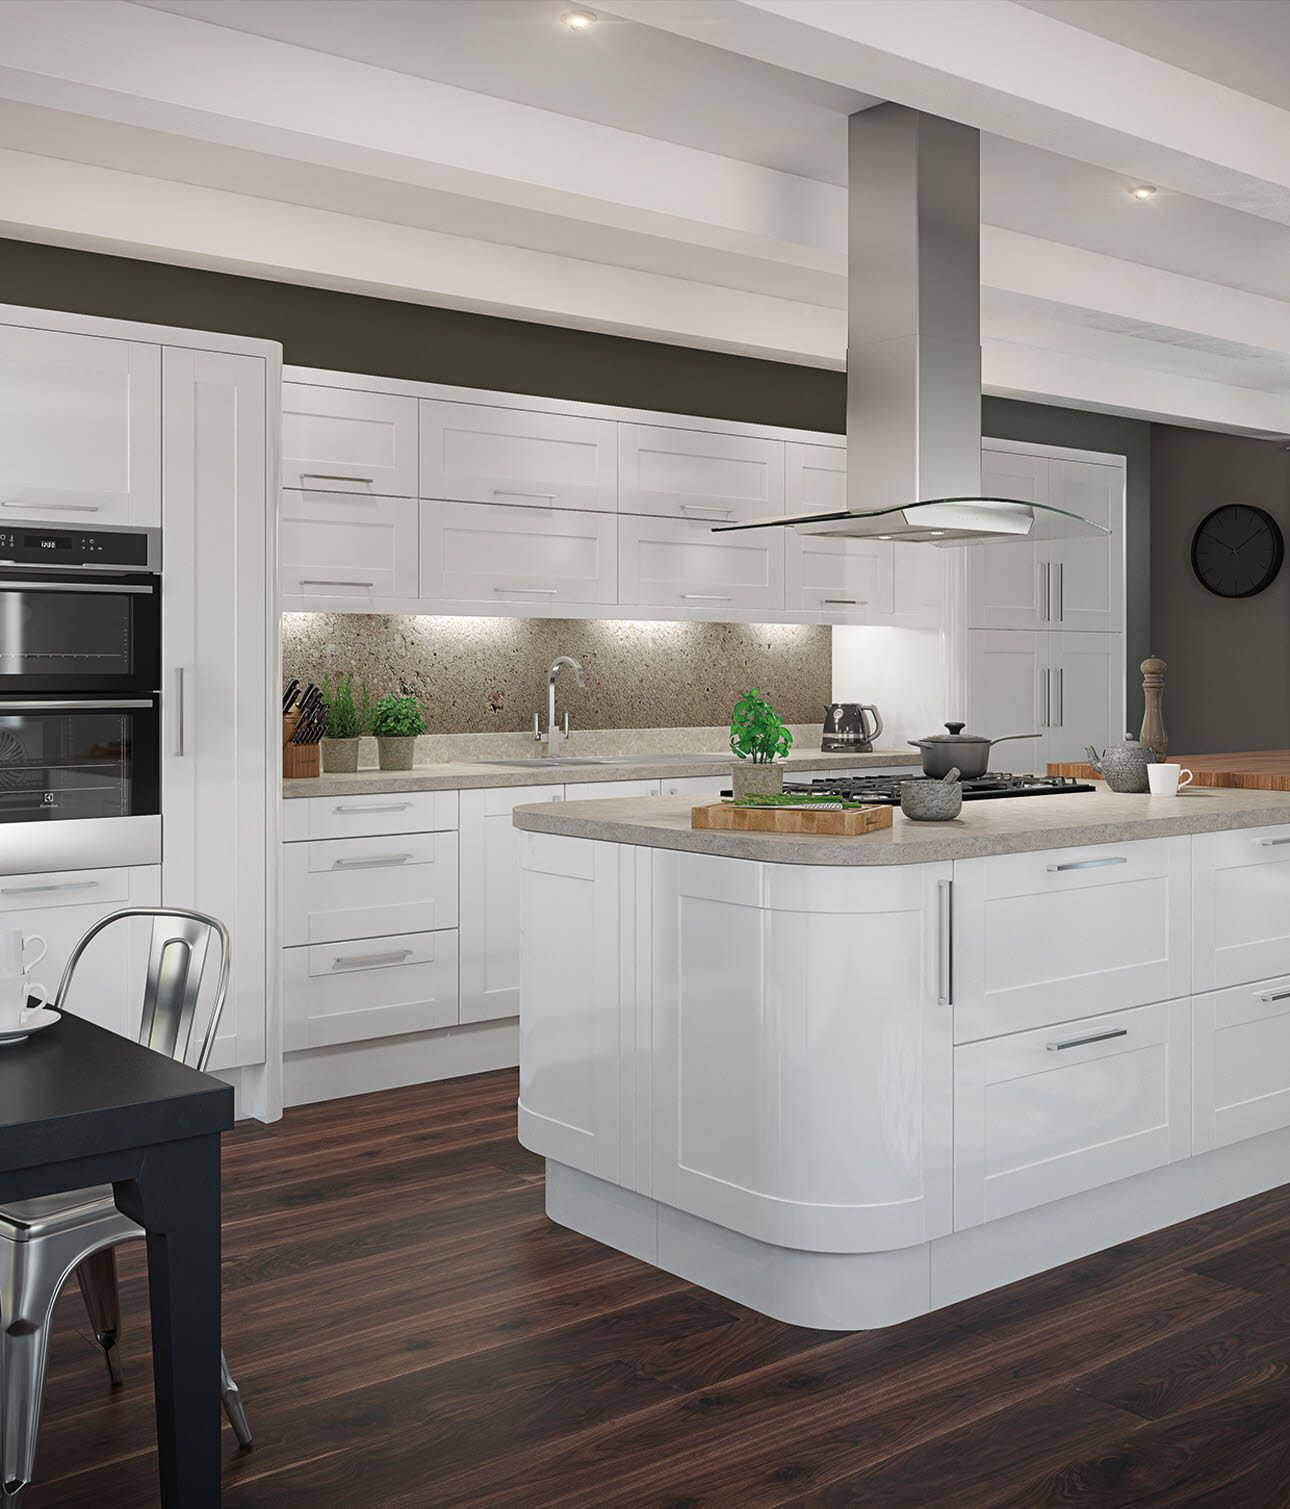 kitchen cabinets cabinet finishes from gloss or matt kitchen cabinets kitchen cabinets cabinet finishes from gloss or matt kitchen      rh   pinterest com